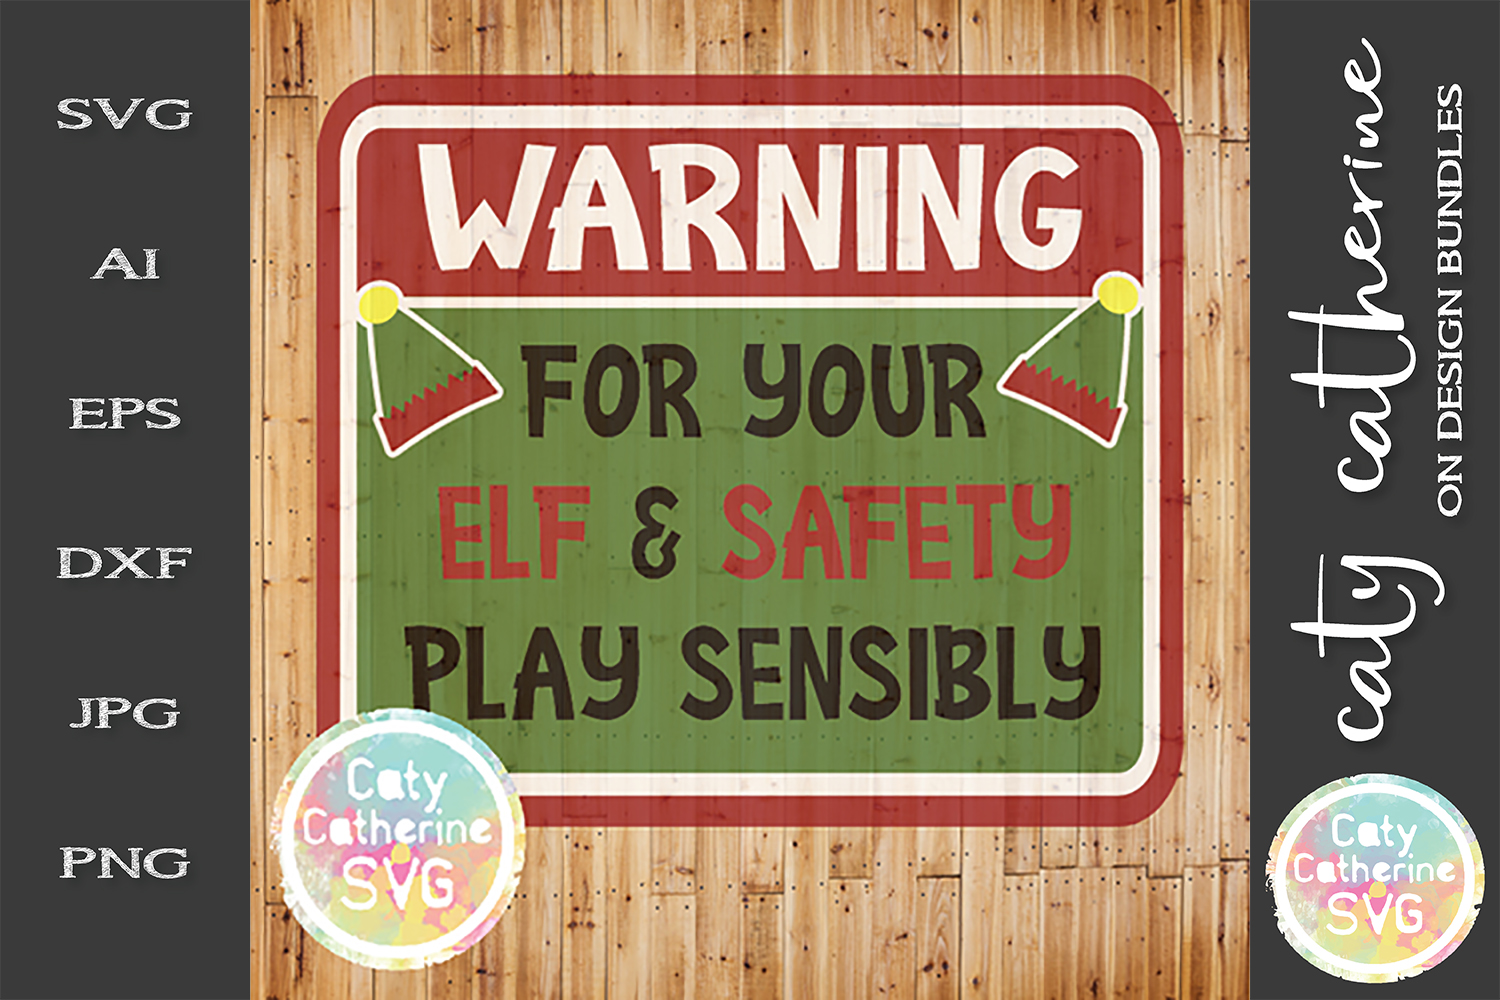 Warning For Your Elf & Safety Play Sensibly SVG Cut File example image 1